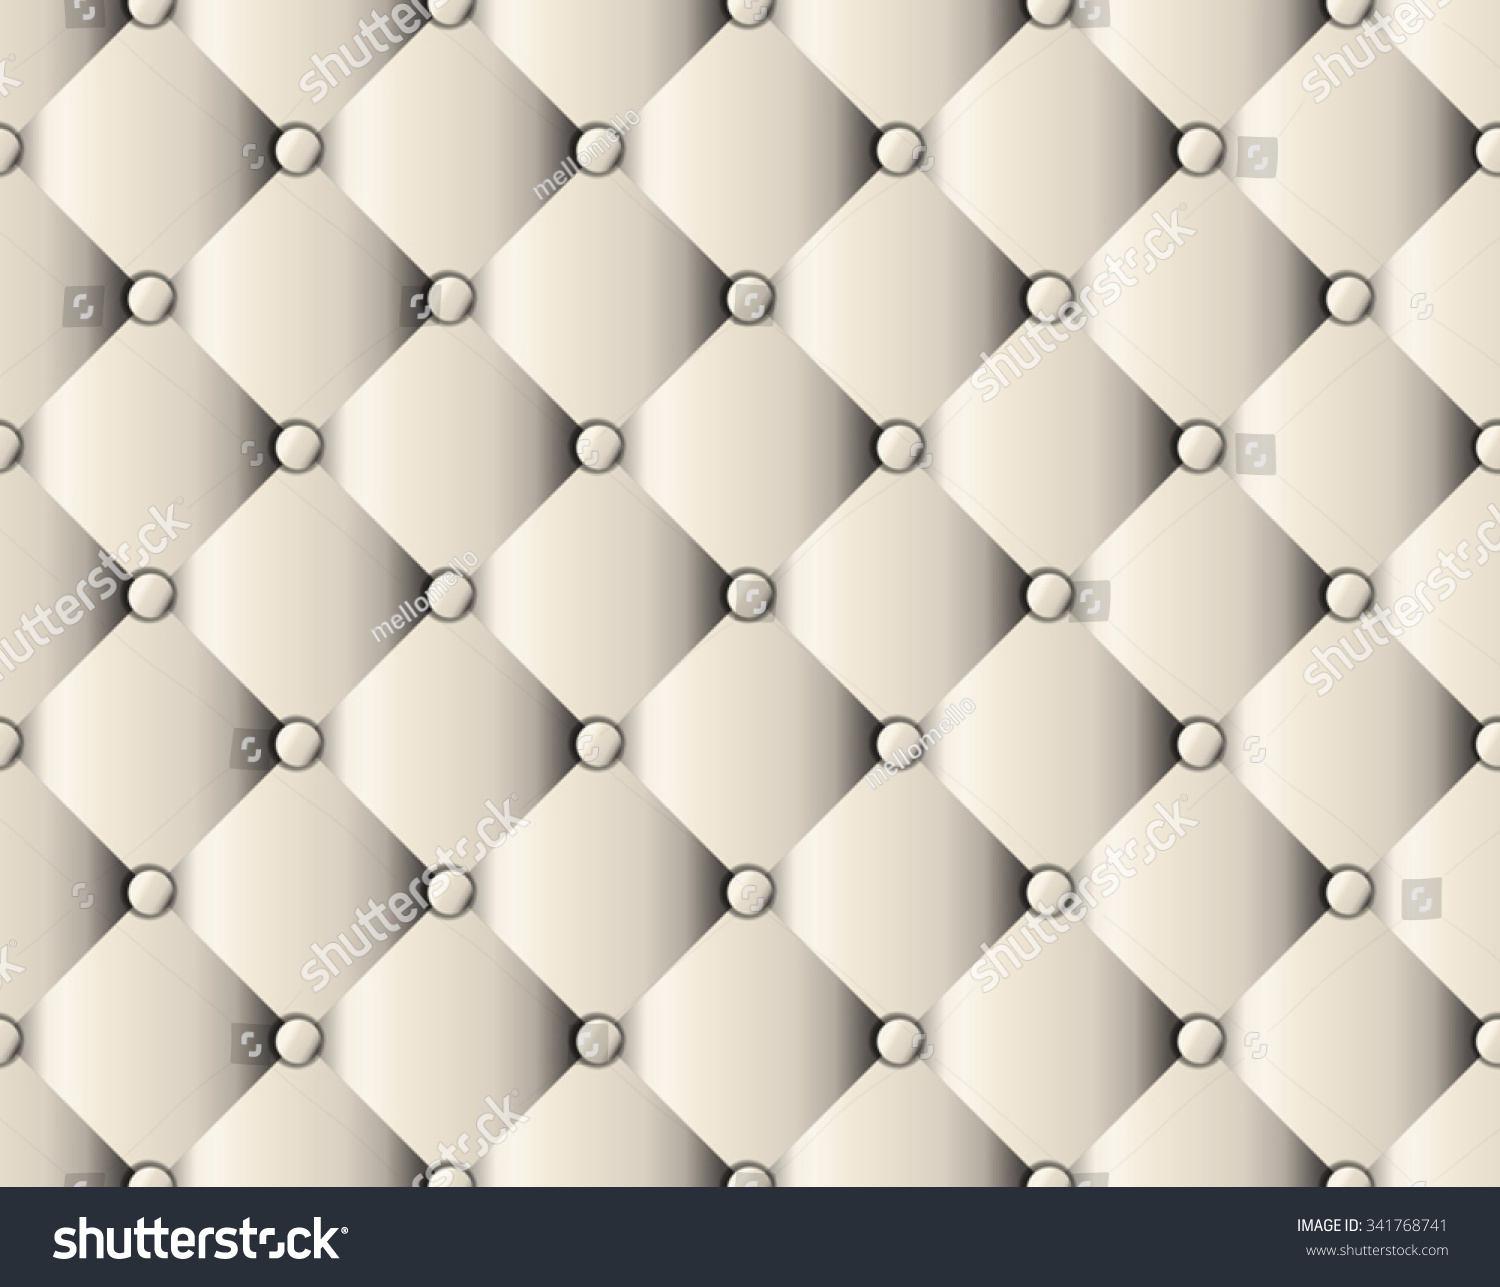 White Upholstery Sofa Texture Pattern Background Stock  : stock vector white upholstery sofa texture pattern background seamless vector 341768741 from www.shutterstock.com size 1500 x 1287 jpeg 321kB